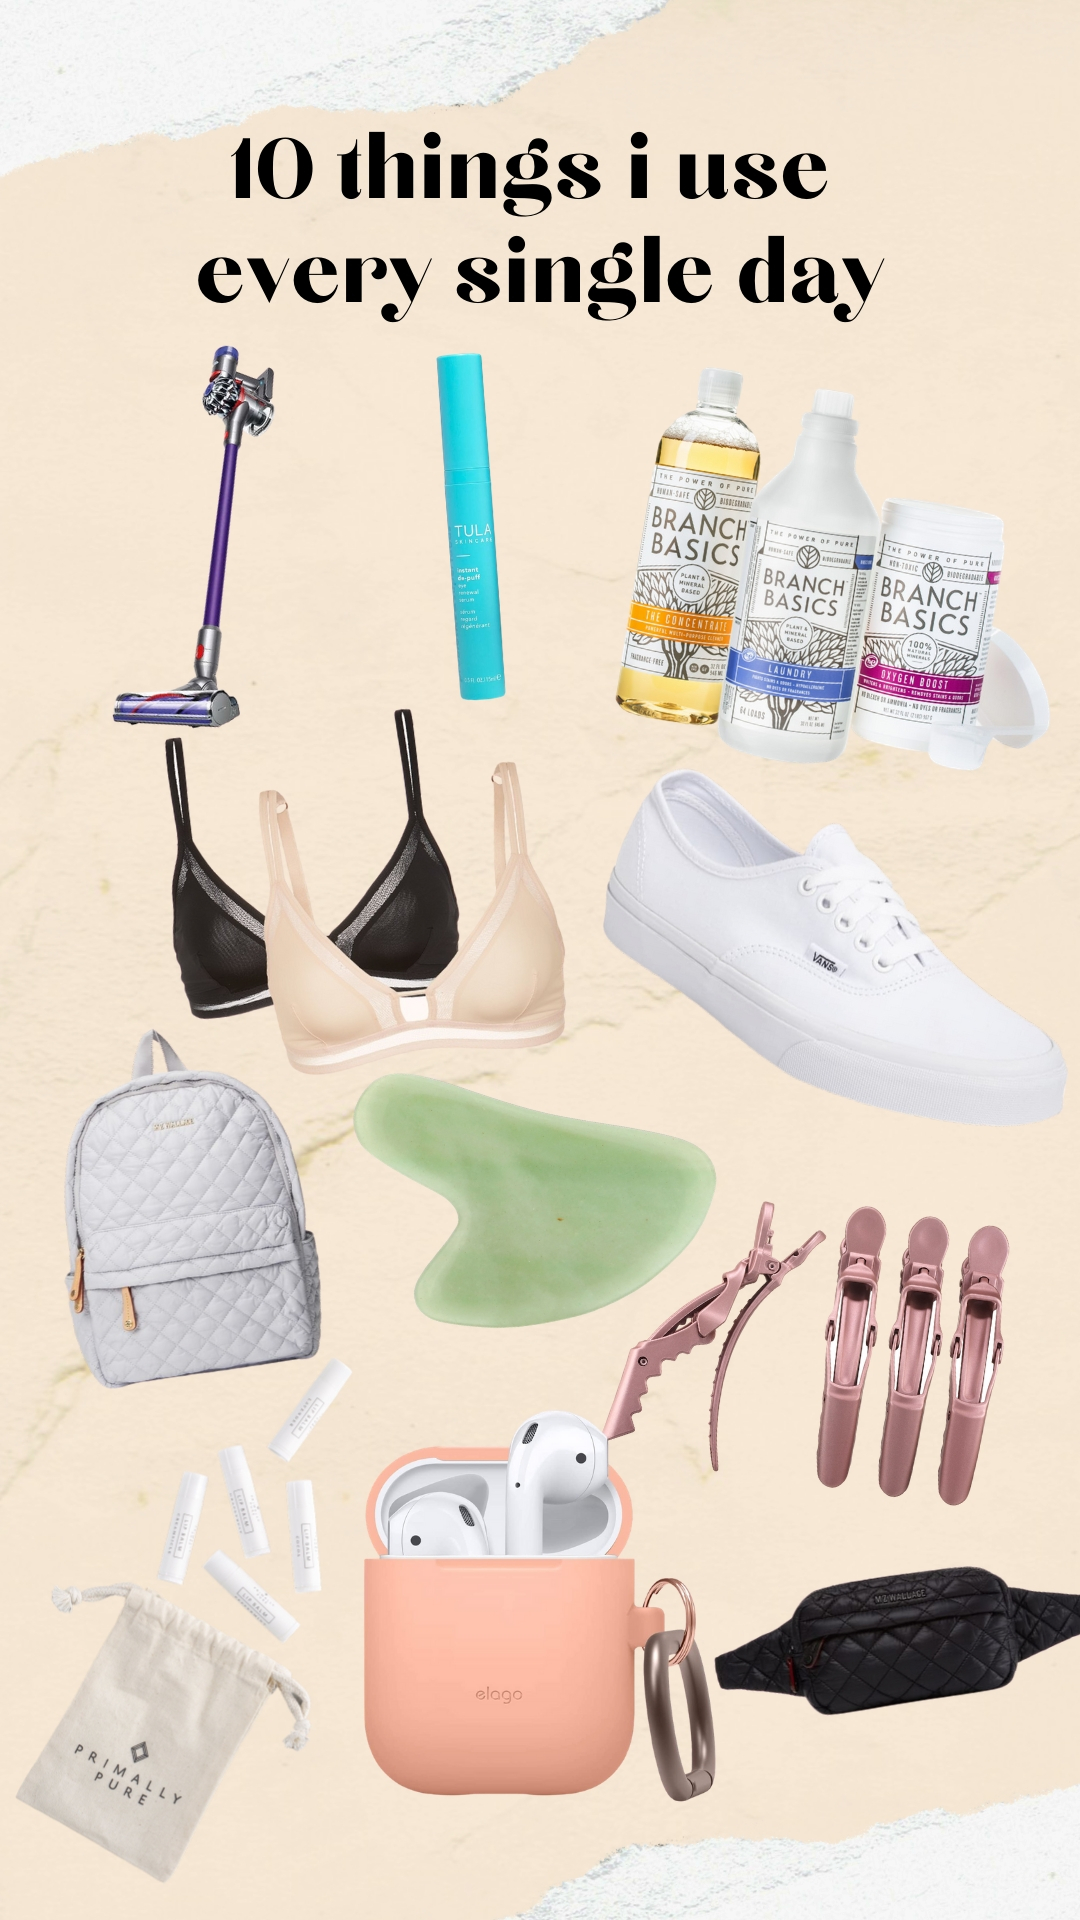 10 things i use every single day